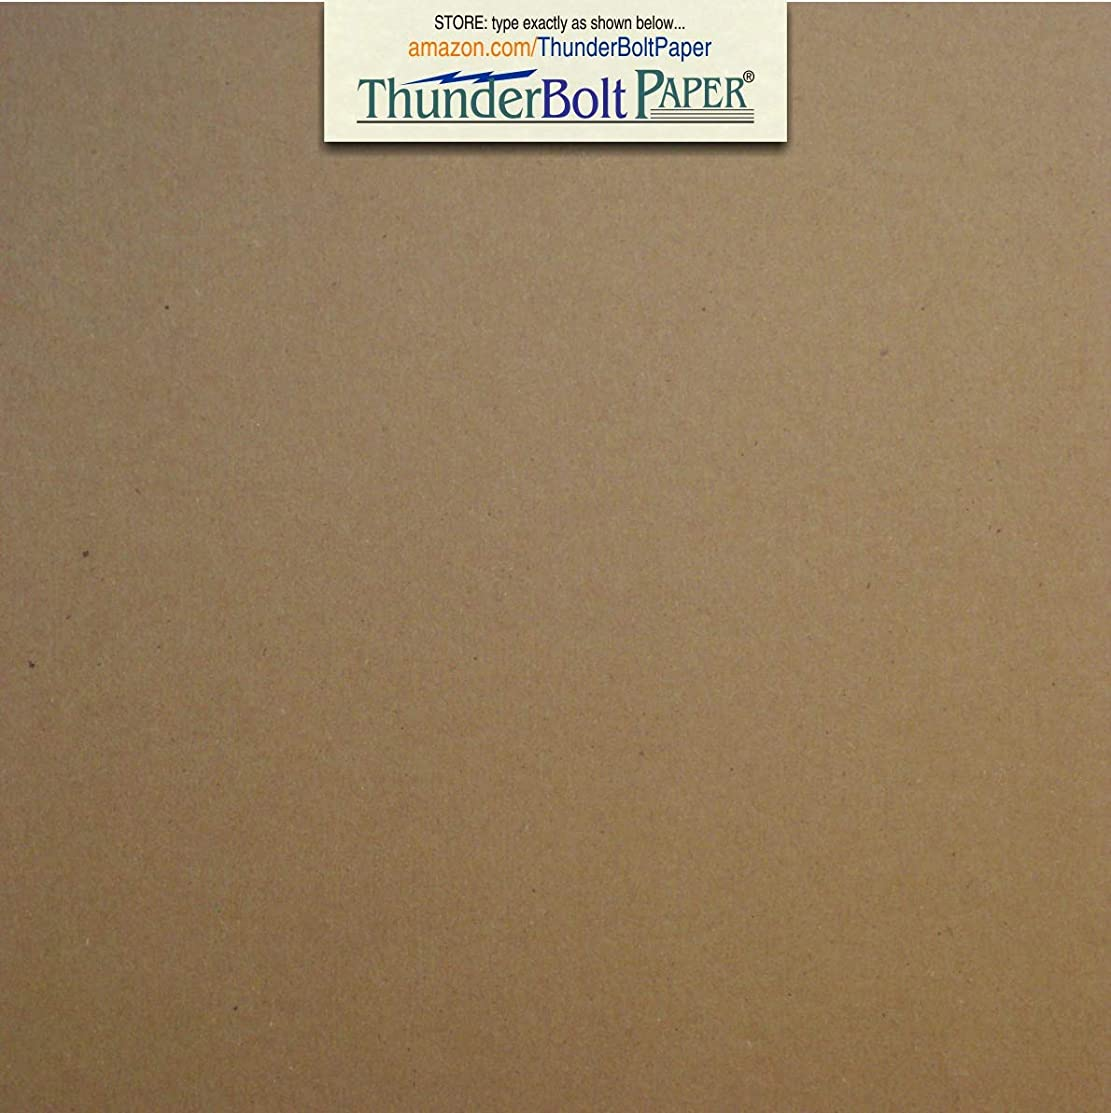 100 Sheets Chipboard 46pt (Point) 6 X 6 Inches Heavy Weight Square Scrapbook Size .046 Caliper Thick Cardboard Craft and Packing Brown Kraft Paper Board